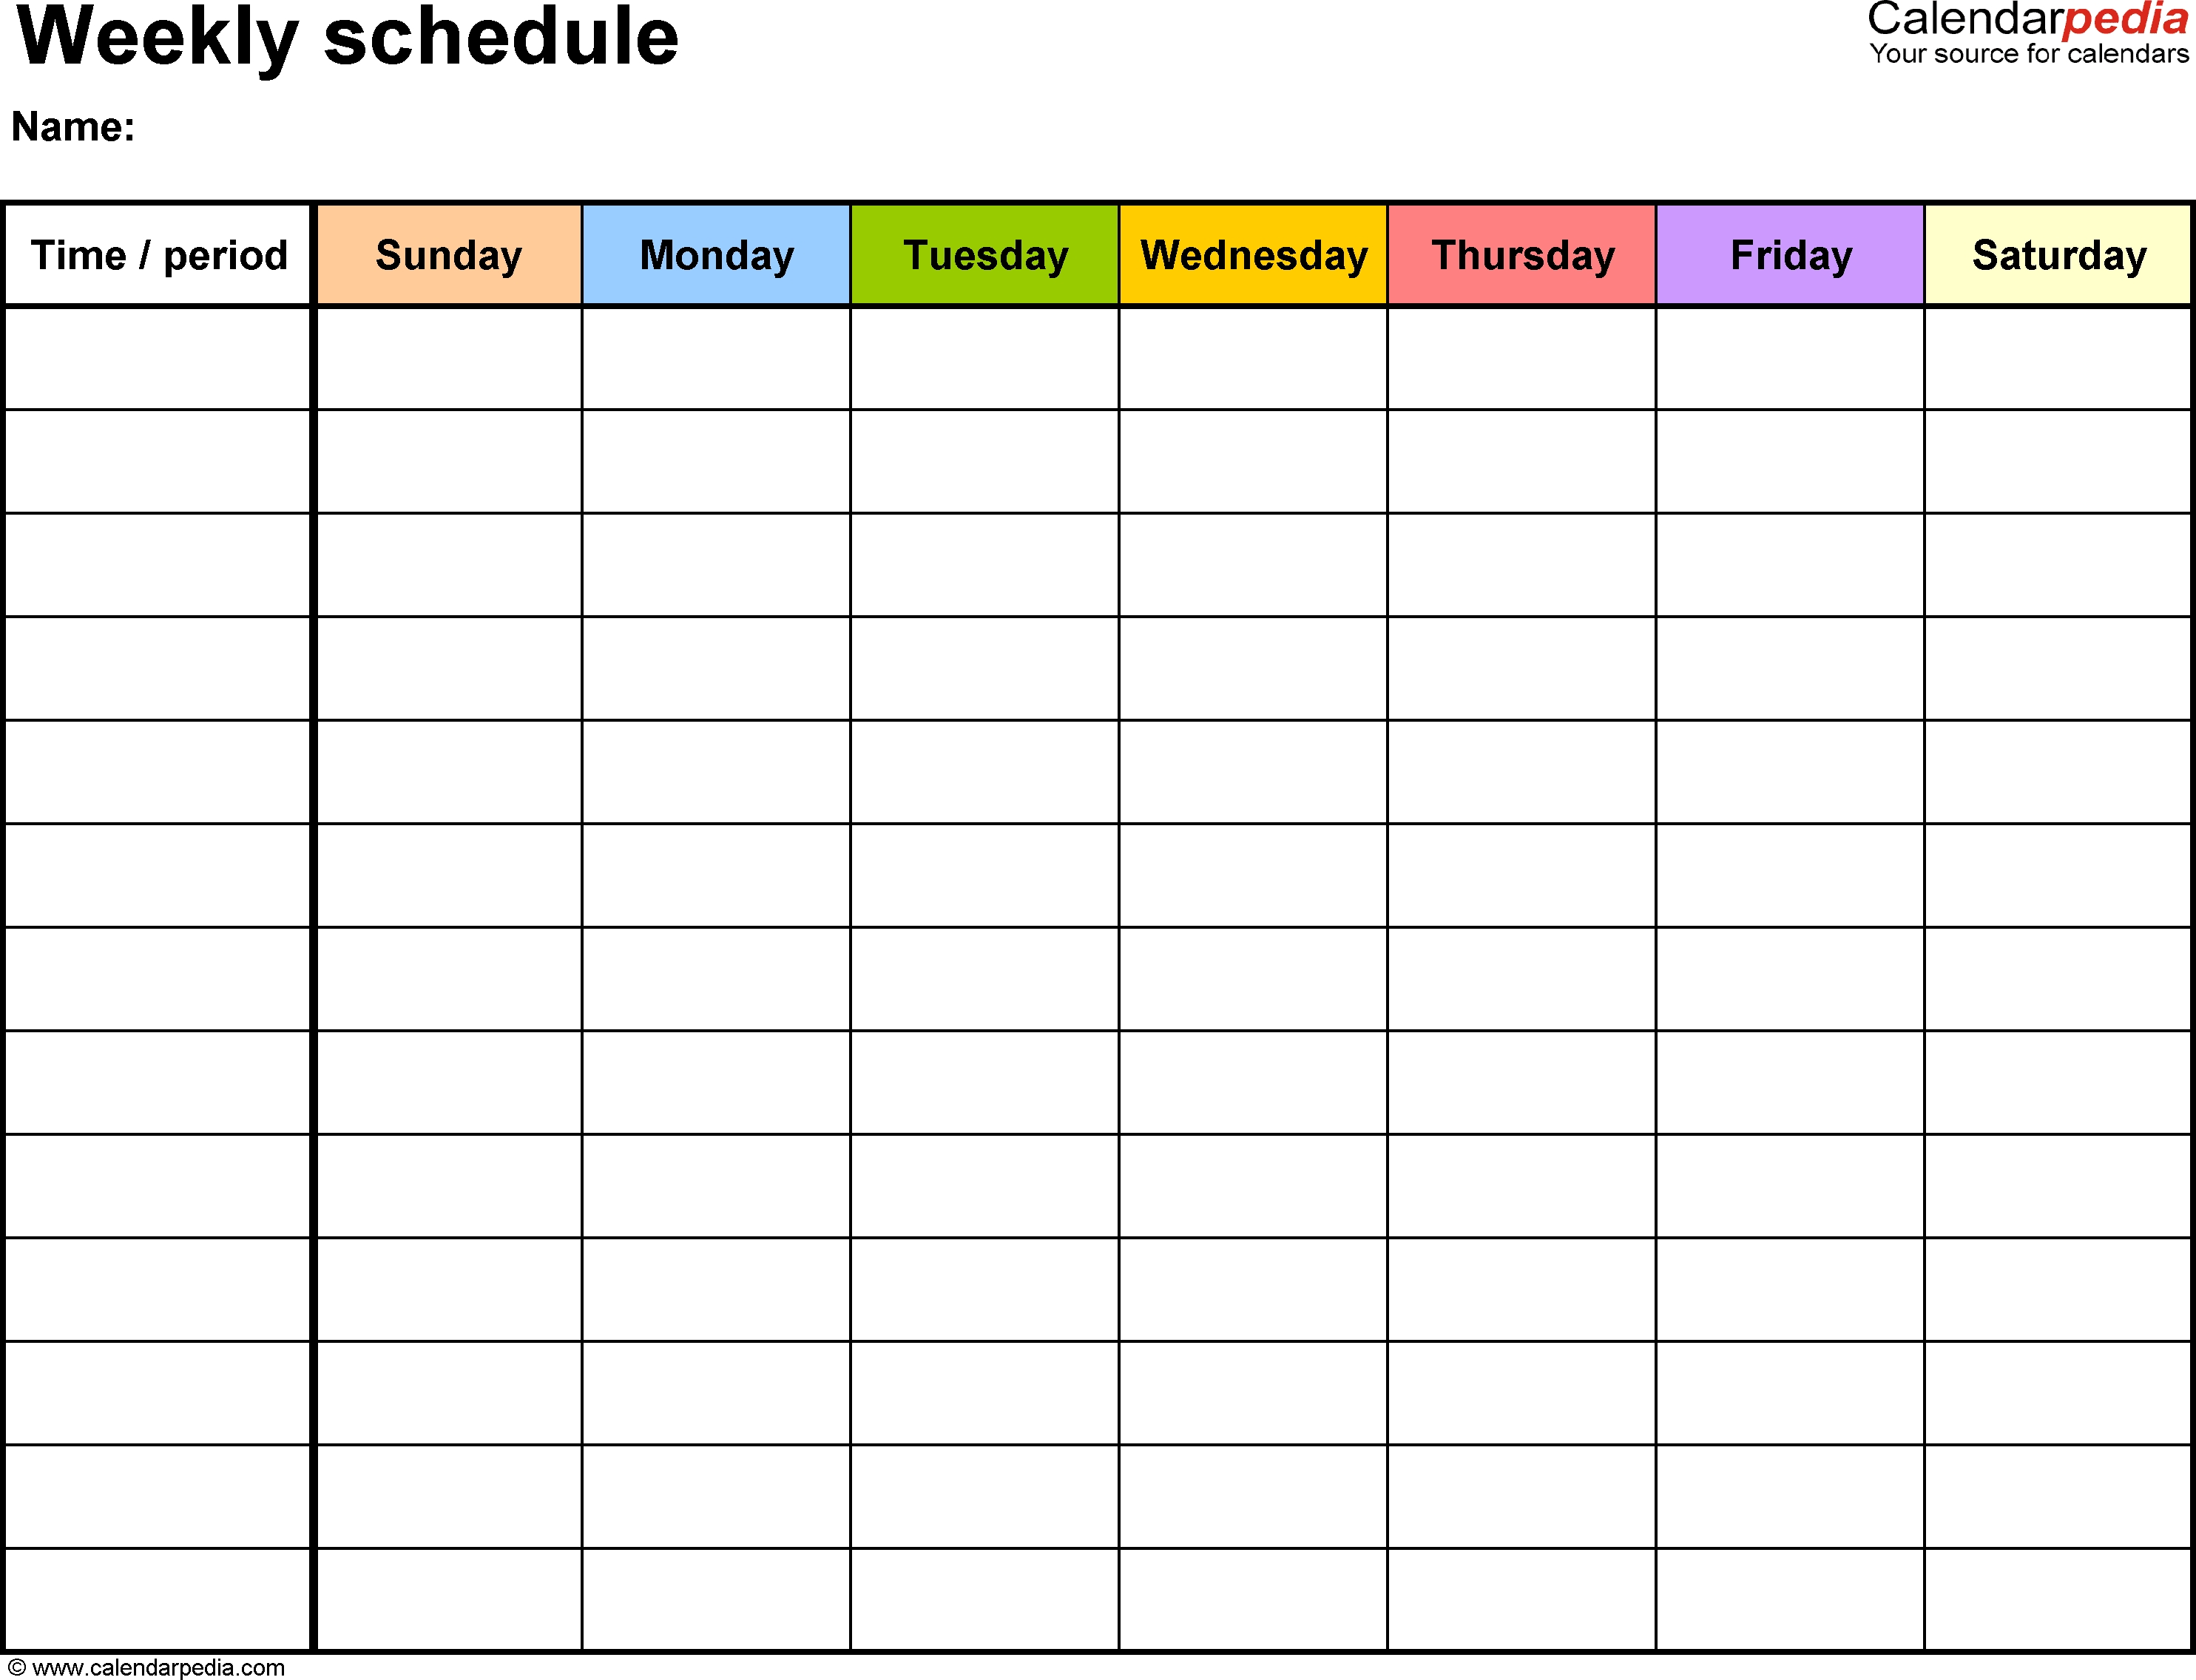 Free Printable Weekly Schedules - Yeniscale.co  Free Printable Weekly Schedule Planner